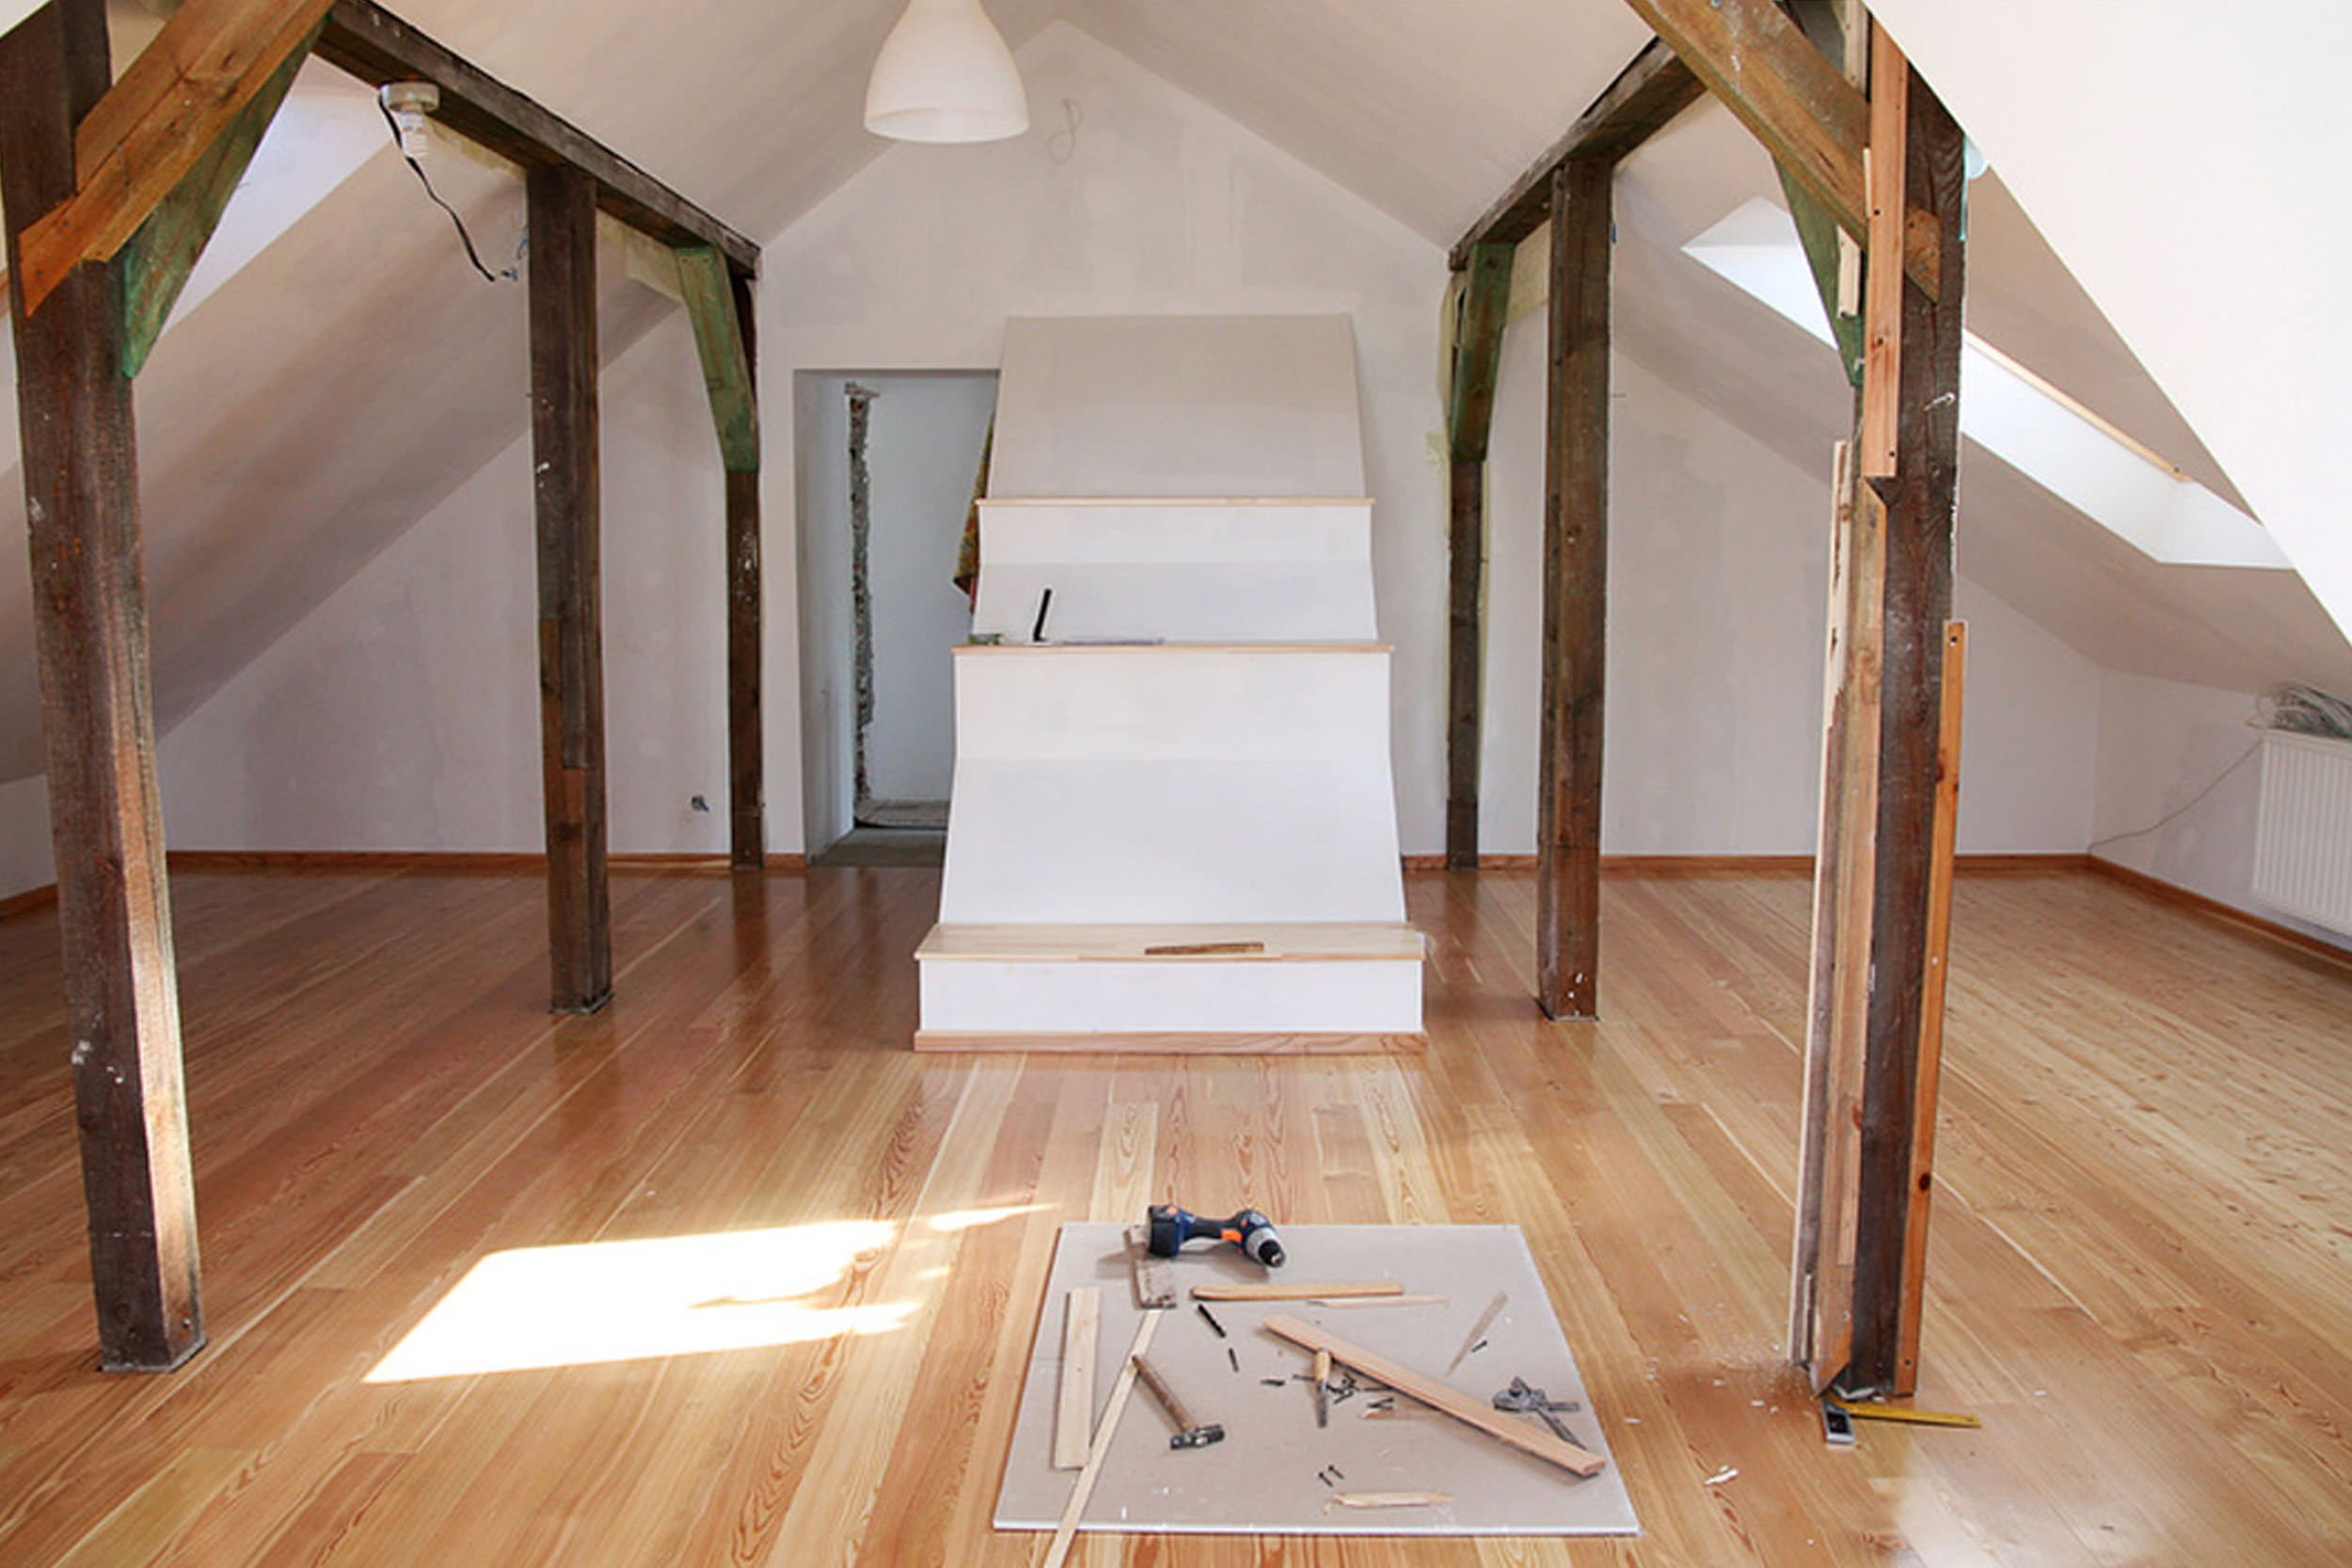 Bespoke loft conversions from Toro Renovations Ltd